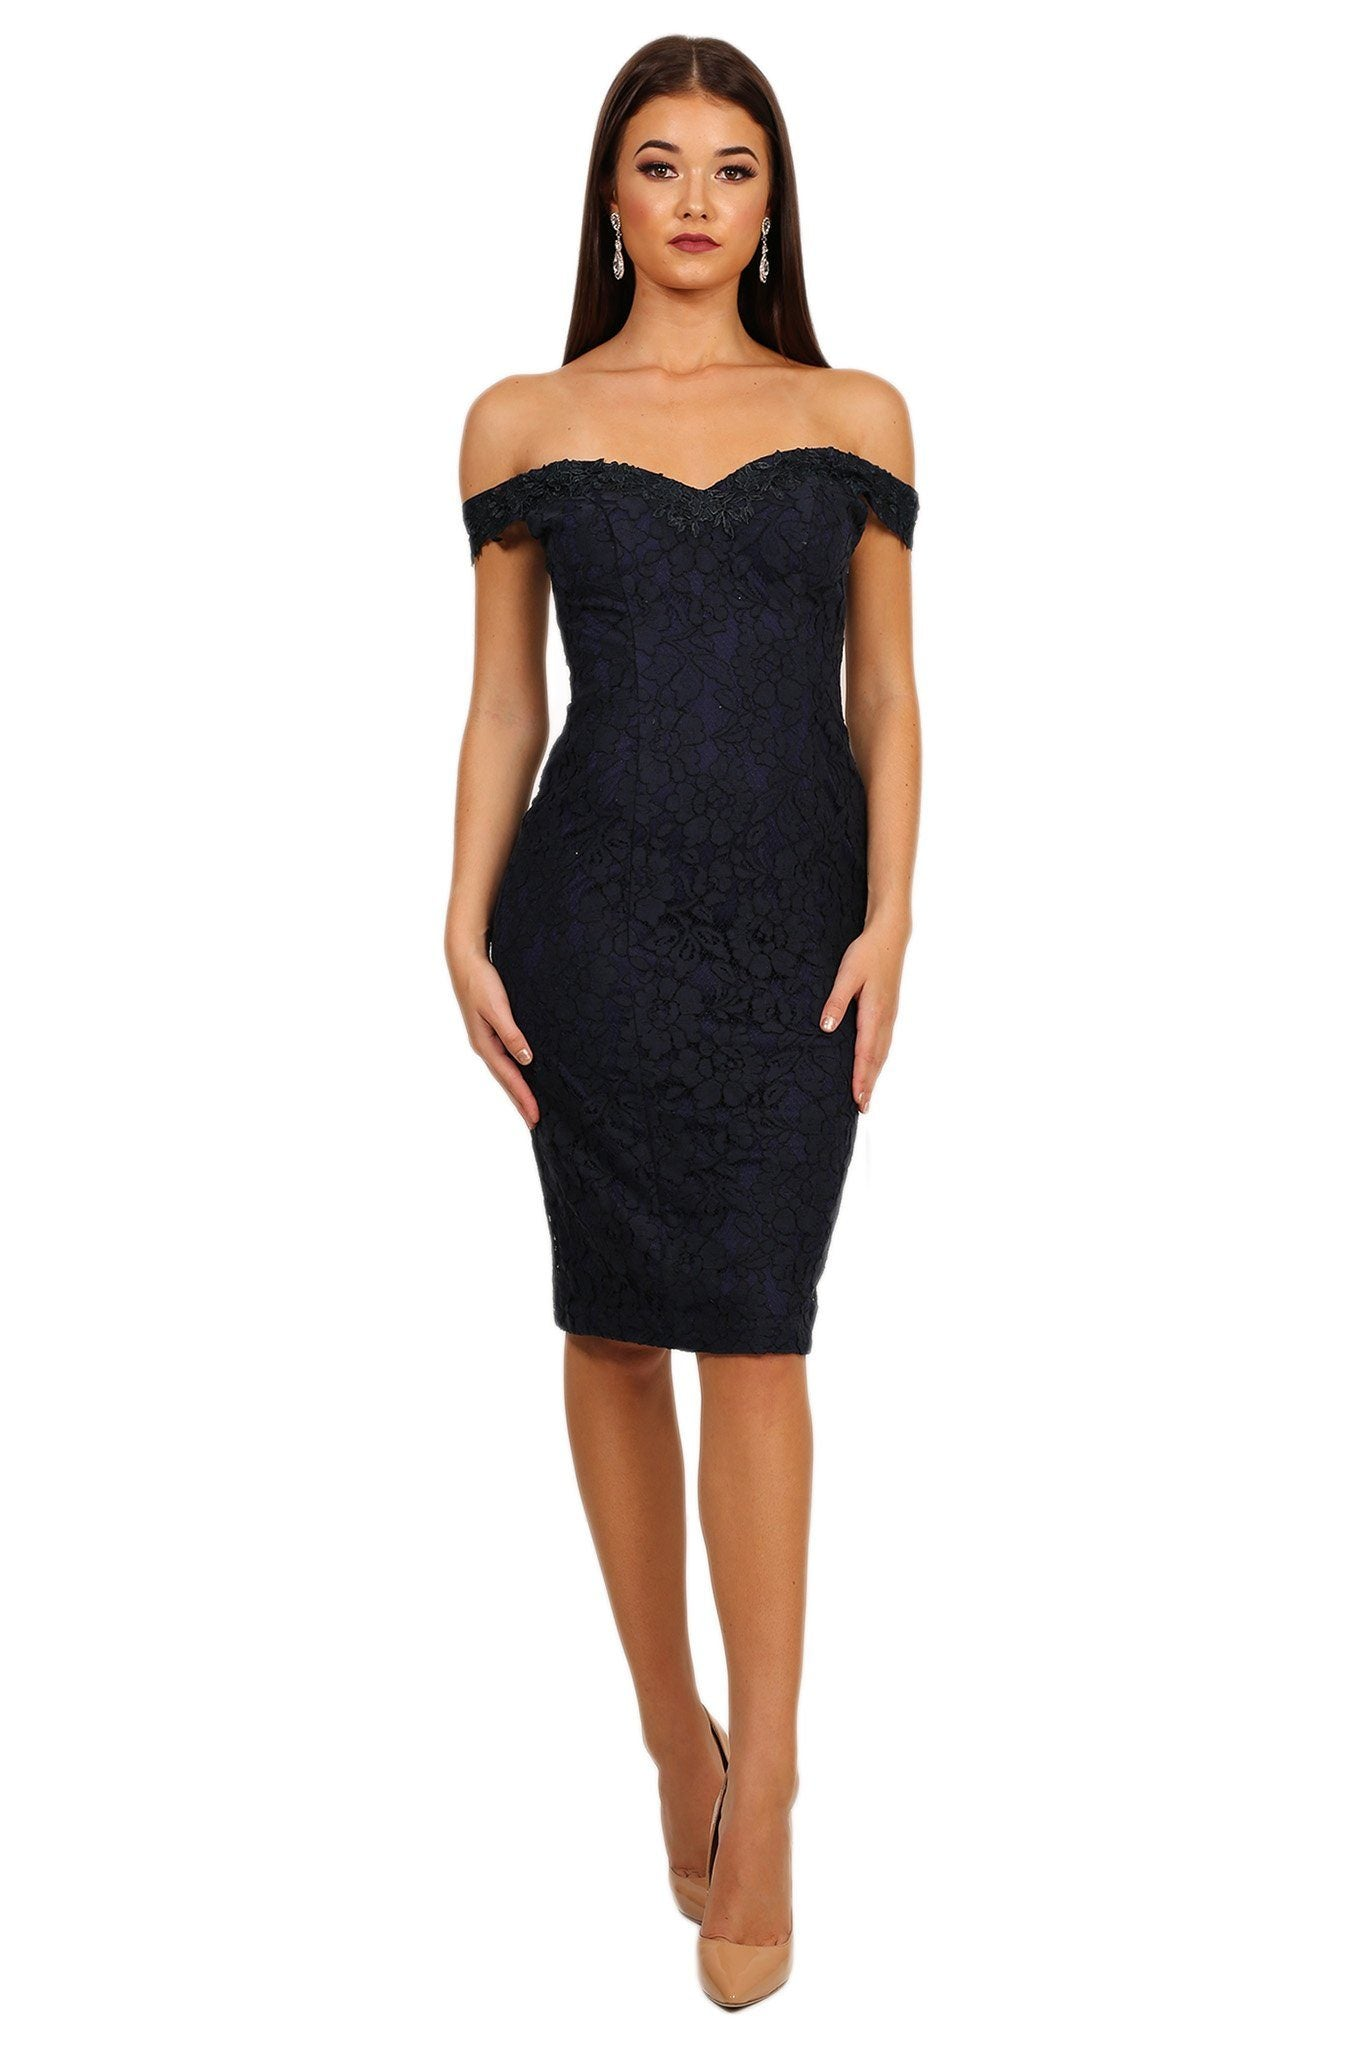 Navy dark blue lace knee-length dress, off the shoulder design, sweetheart neckline with hidden shoulder straps